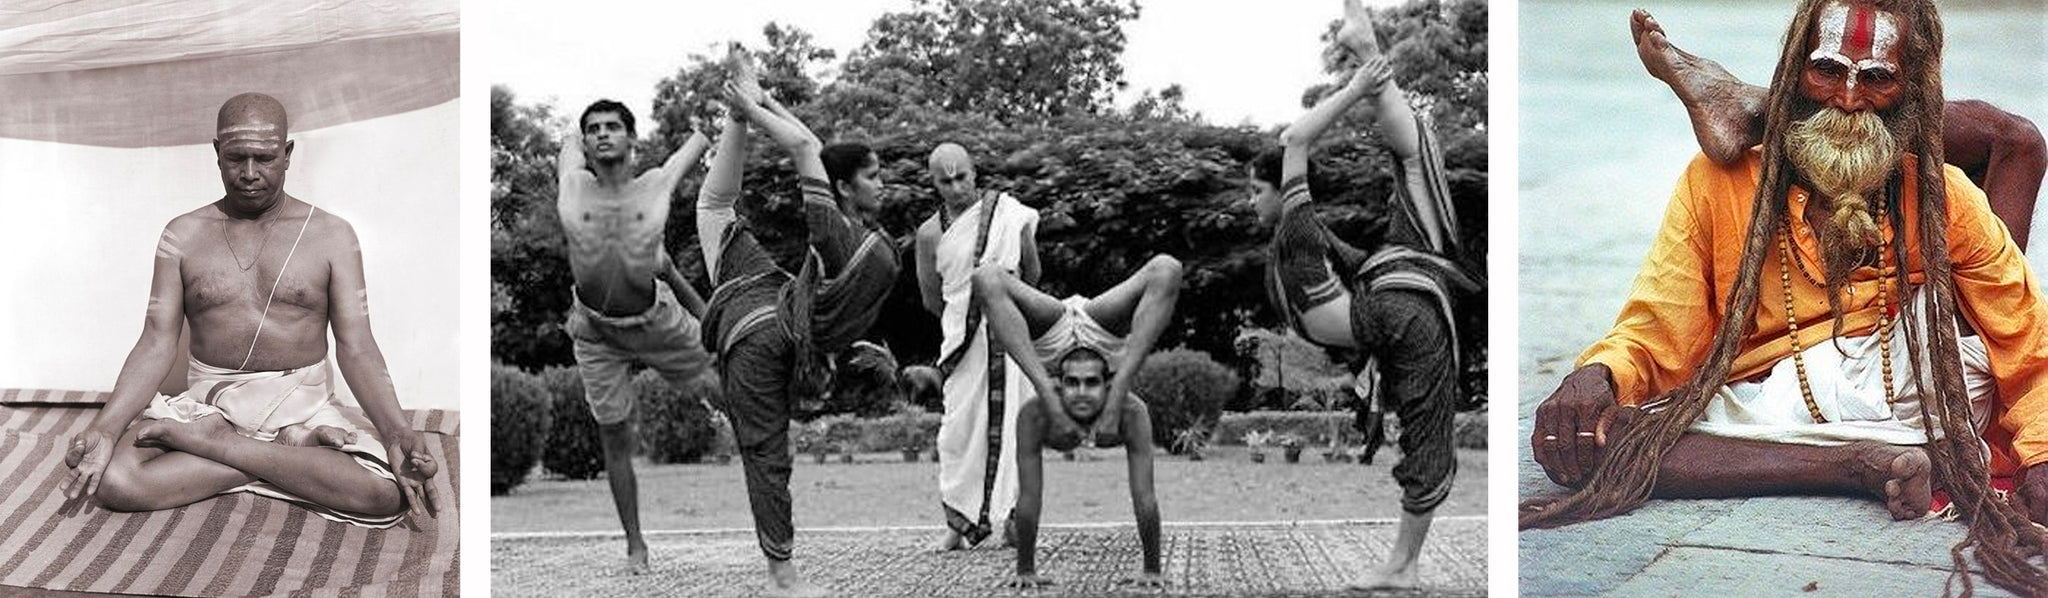 Yogis from India original